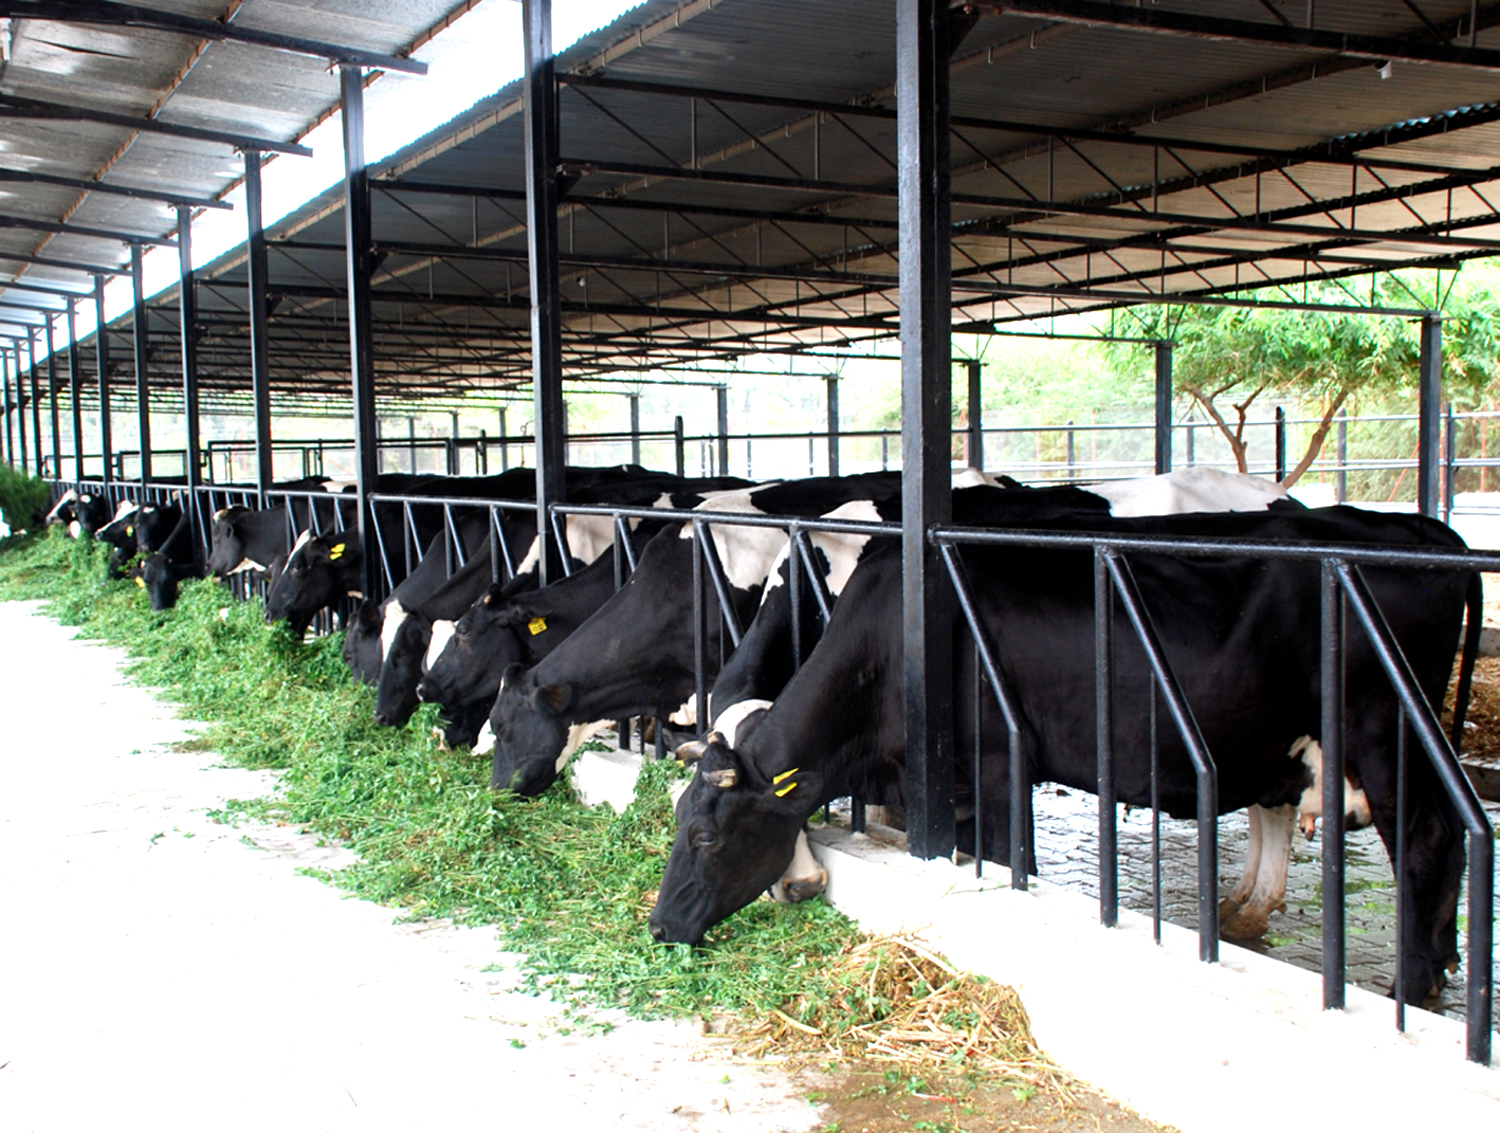 Dairy farm business plan in punjab india